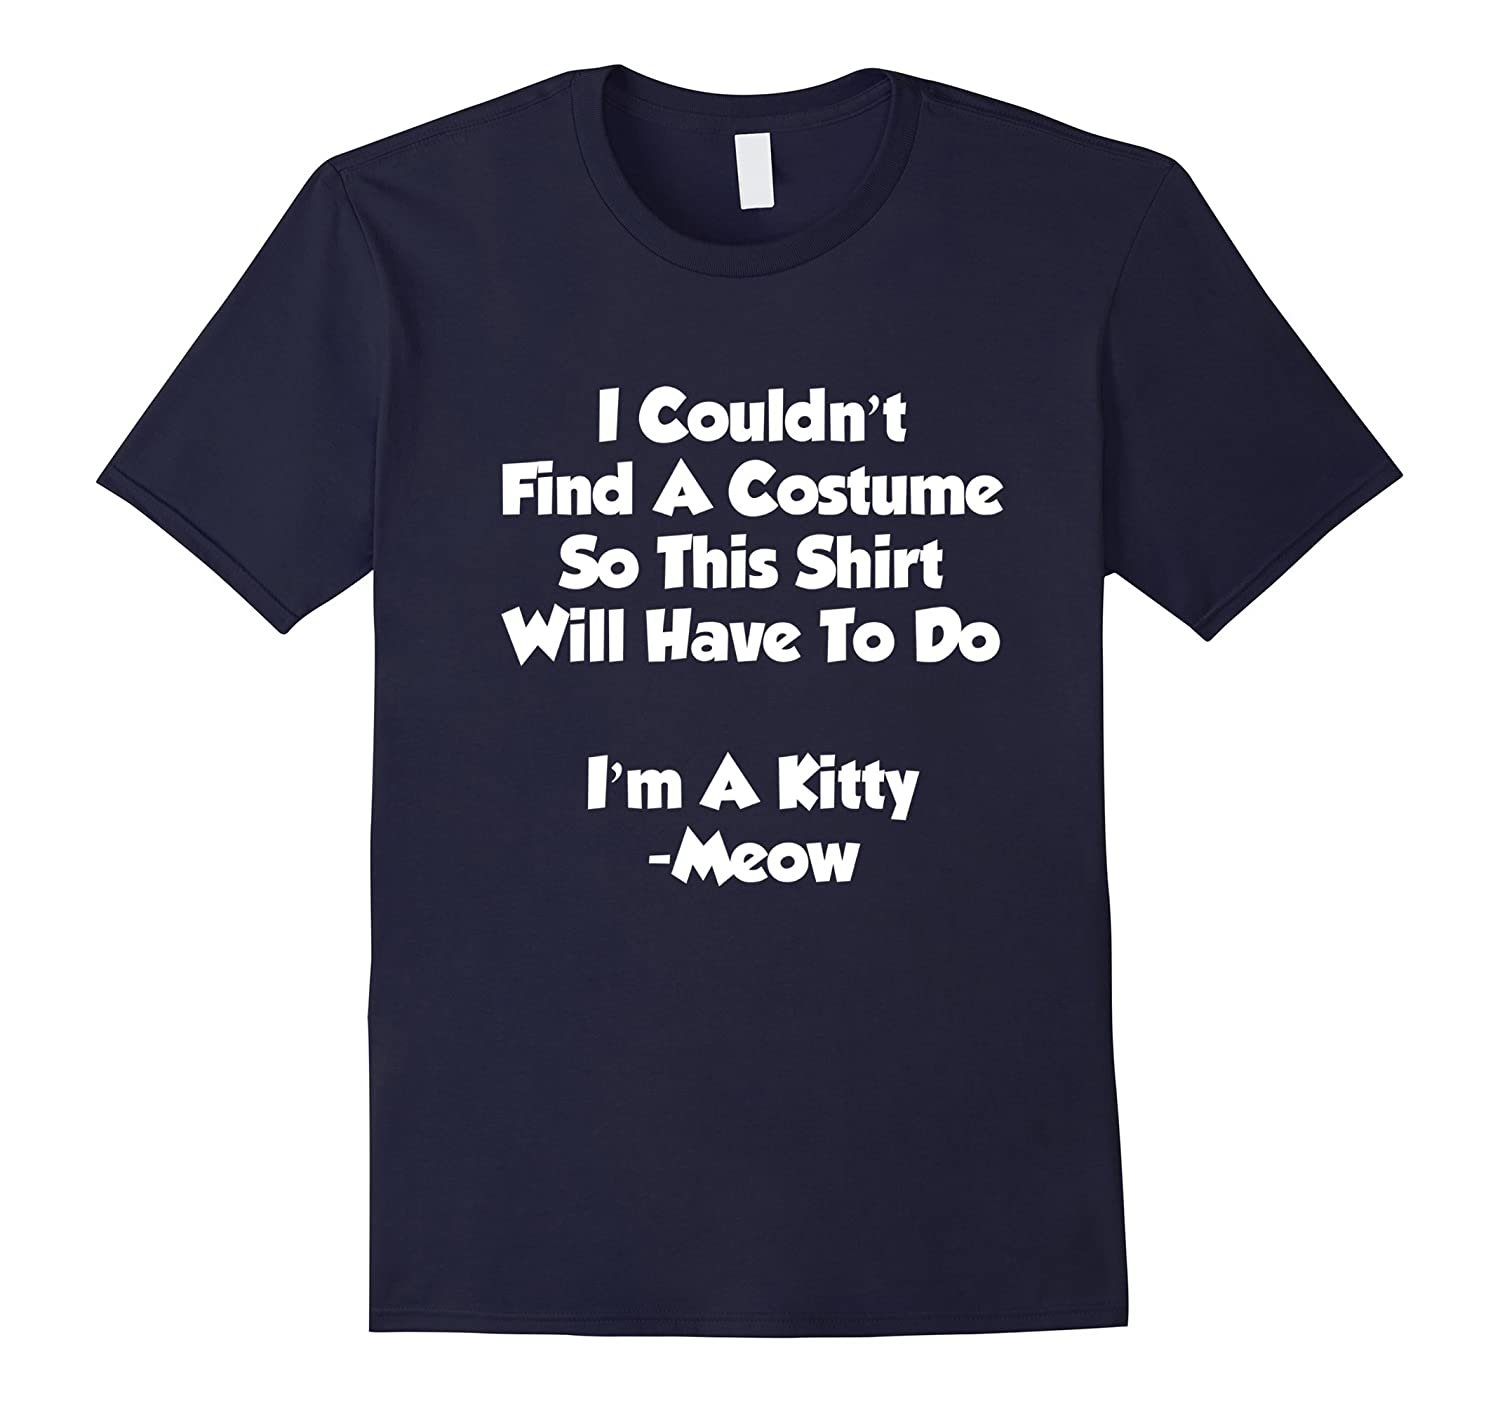 I'm A Kitty Meow Funny Lazy Easy Cat Costume T-Shirt-azvn